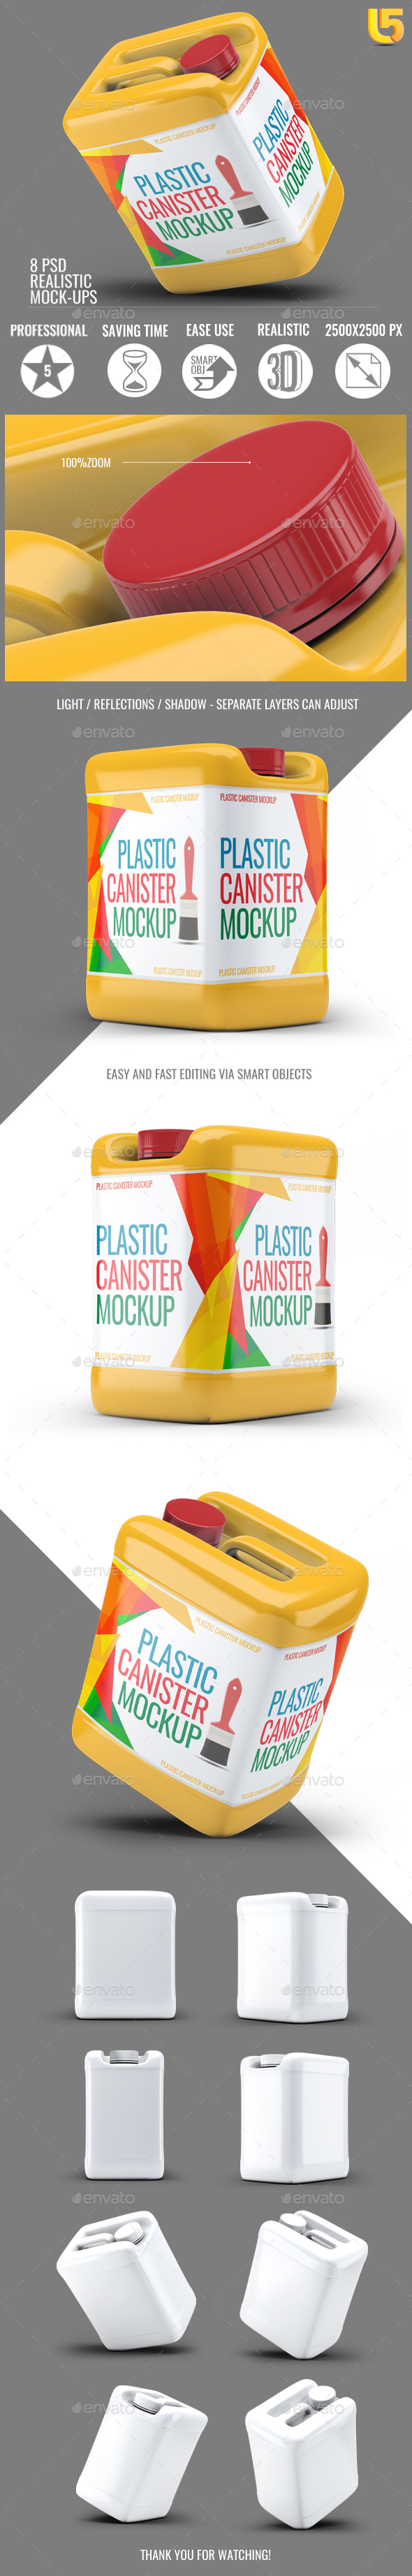 Plastic Canister Mock-Up - Miscellaneous Packaging